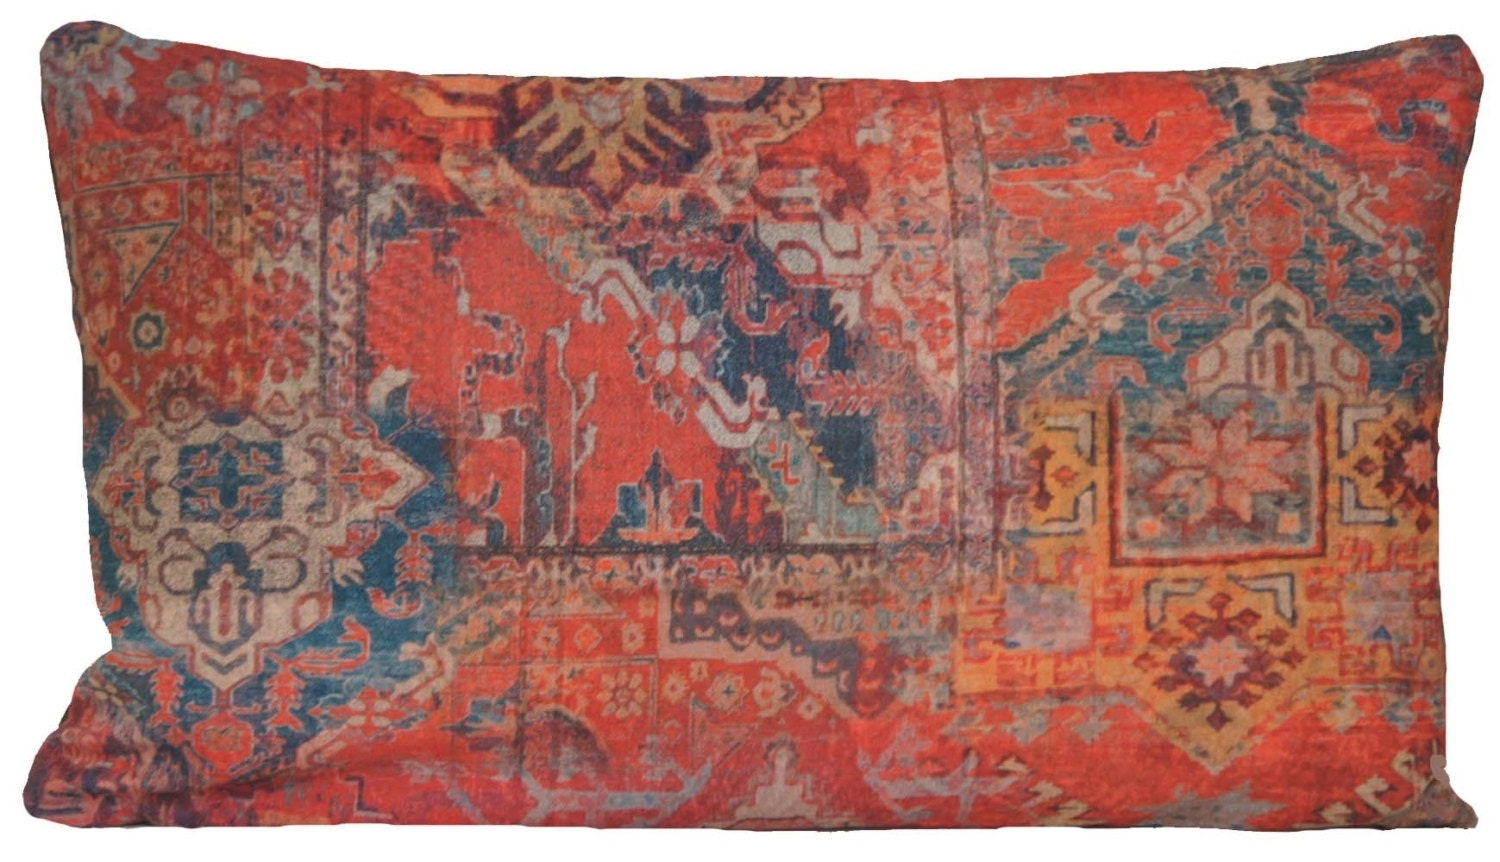 Oriental Throw Pillow Covers : Ethnic Rug Red Throw Pillow Cover Rectangle Kilim Morrocco